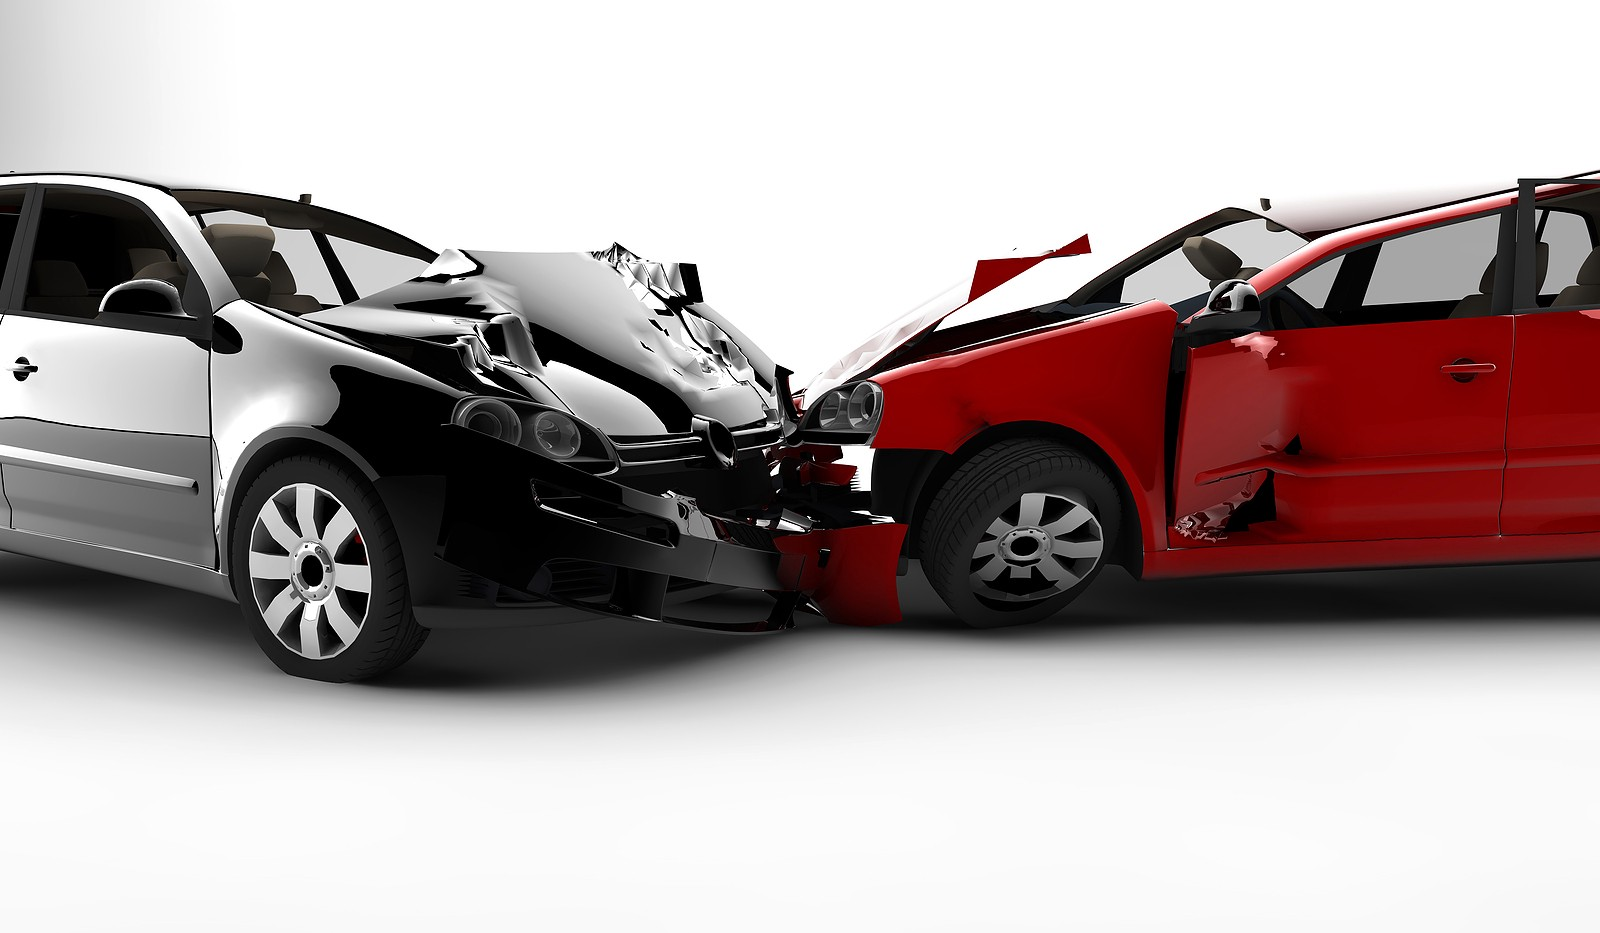 How to Get Rid of a Totaled Car recommend